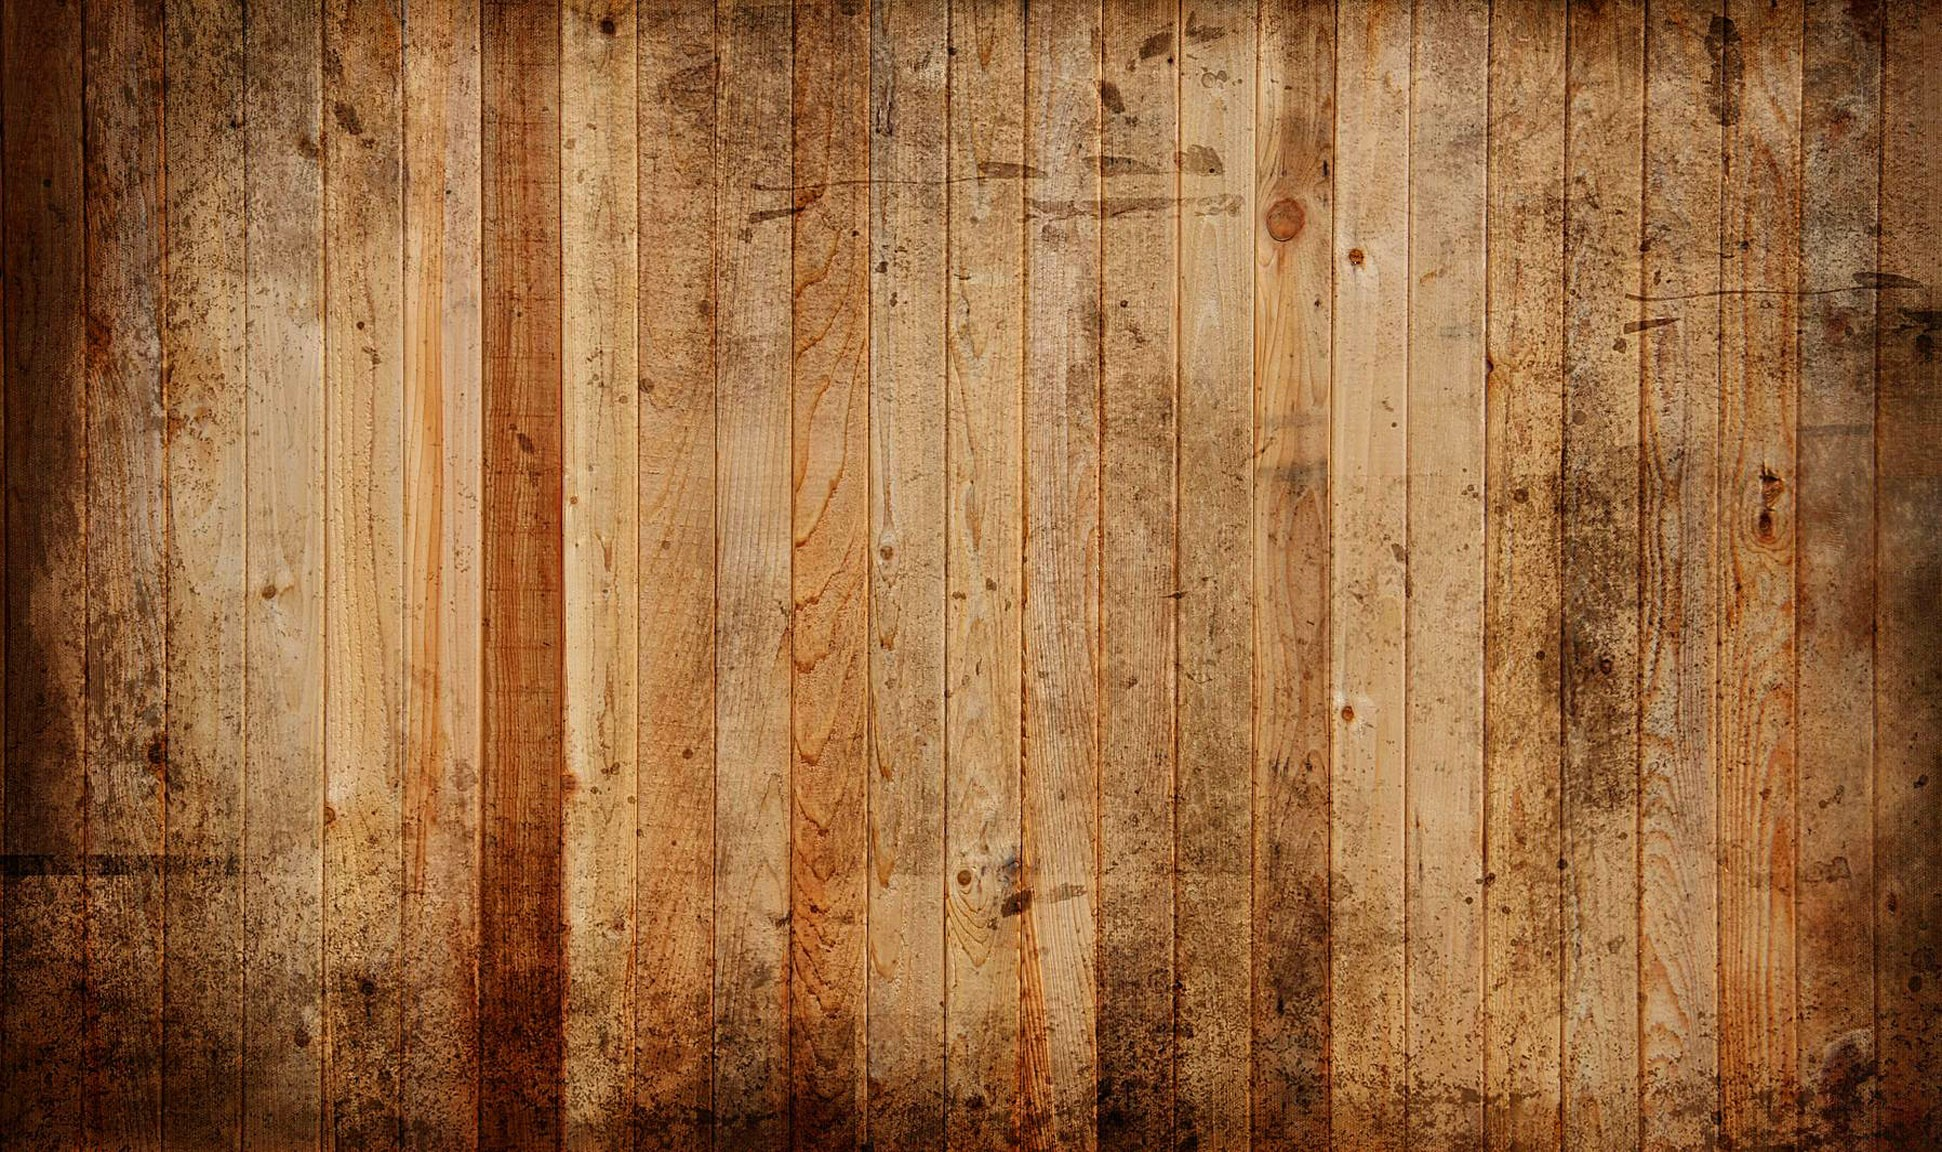 30 Rustic Backgrounds 183 ① Download Free Beautiful Hd